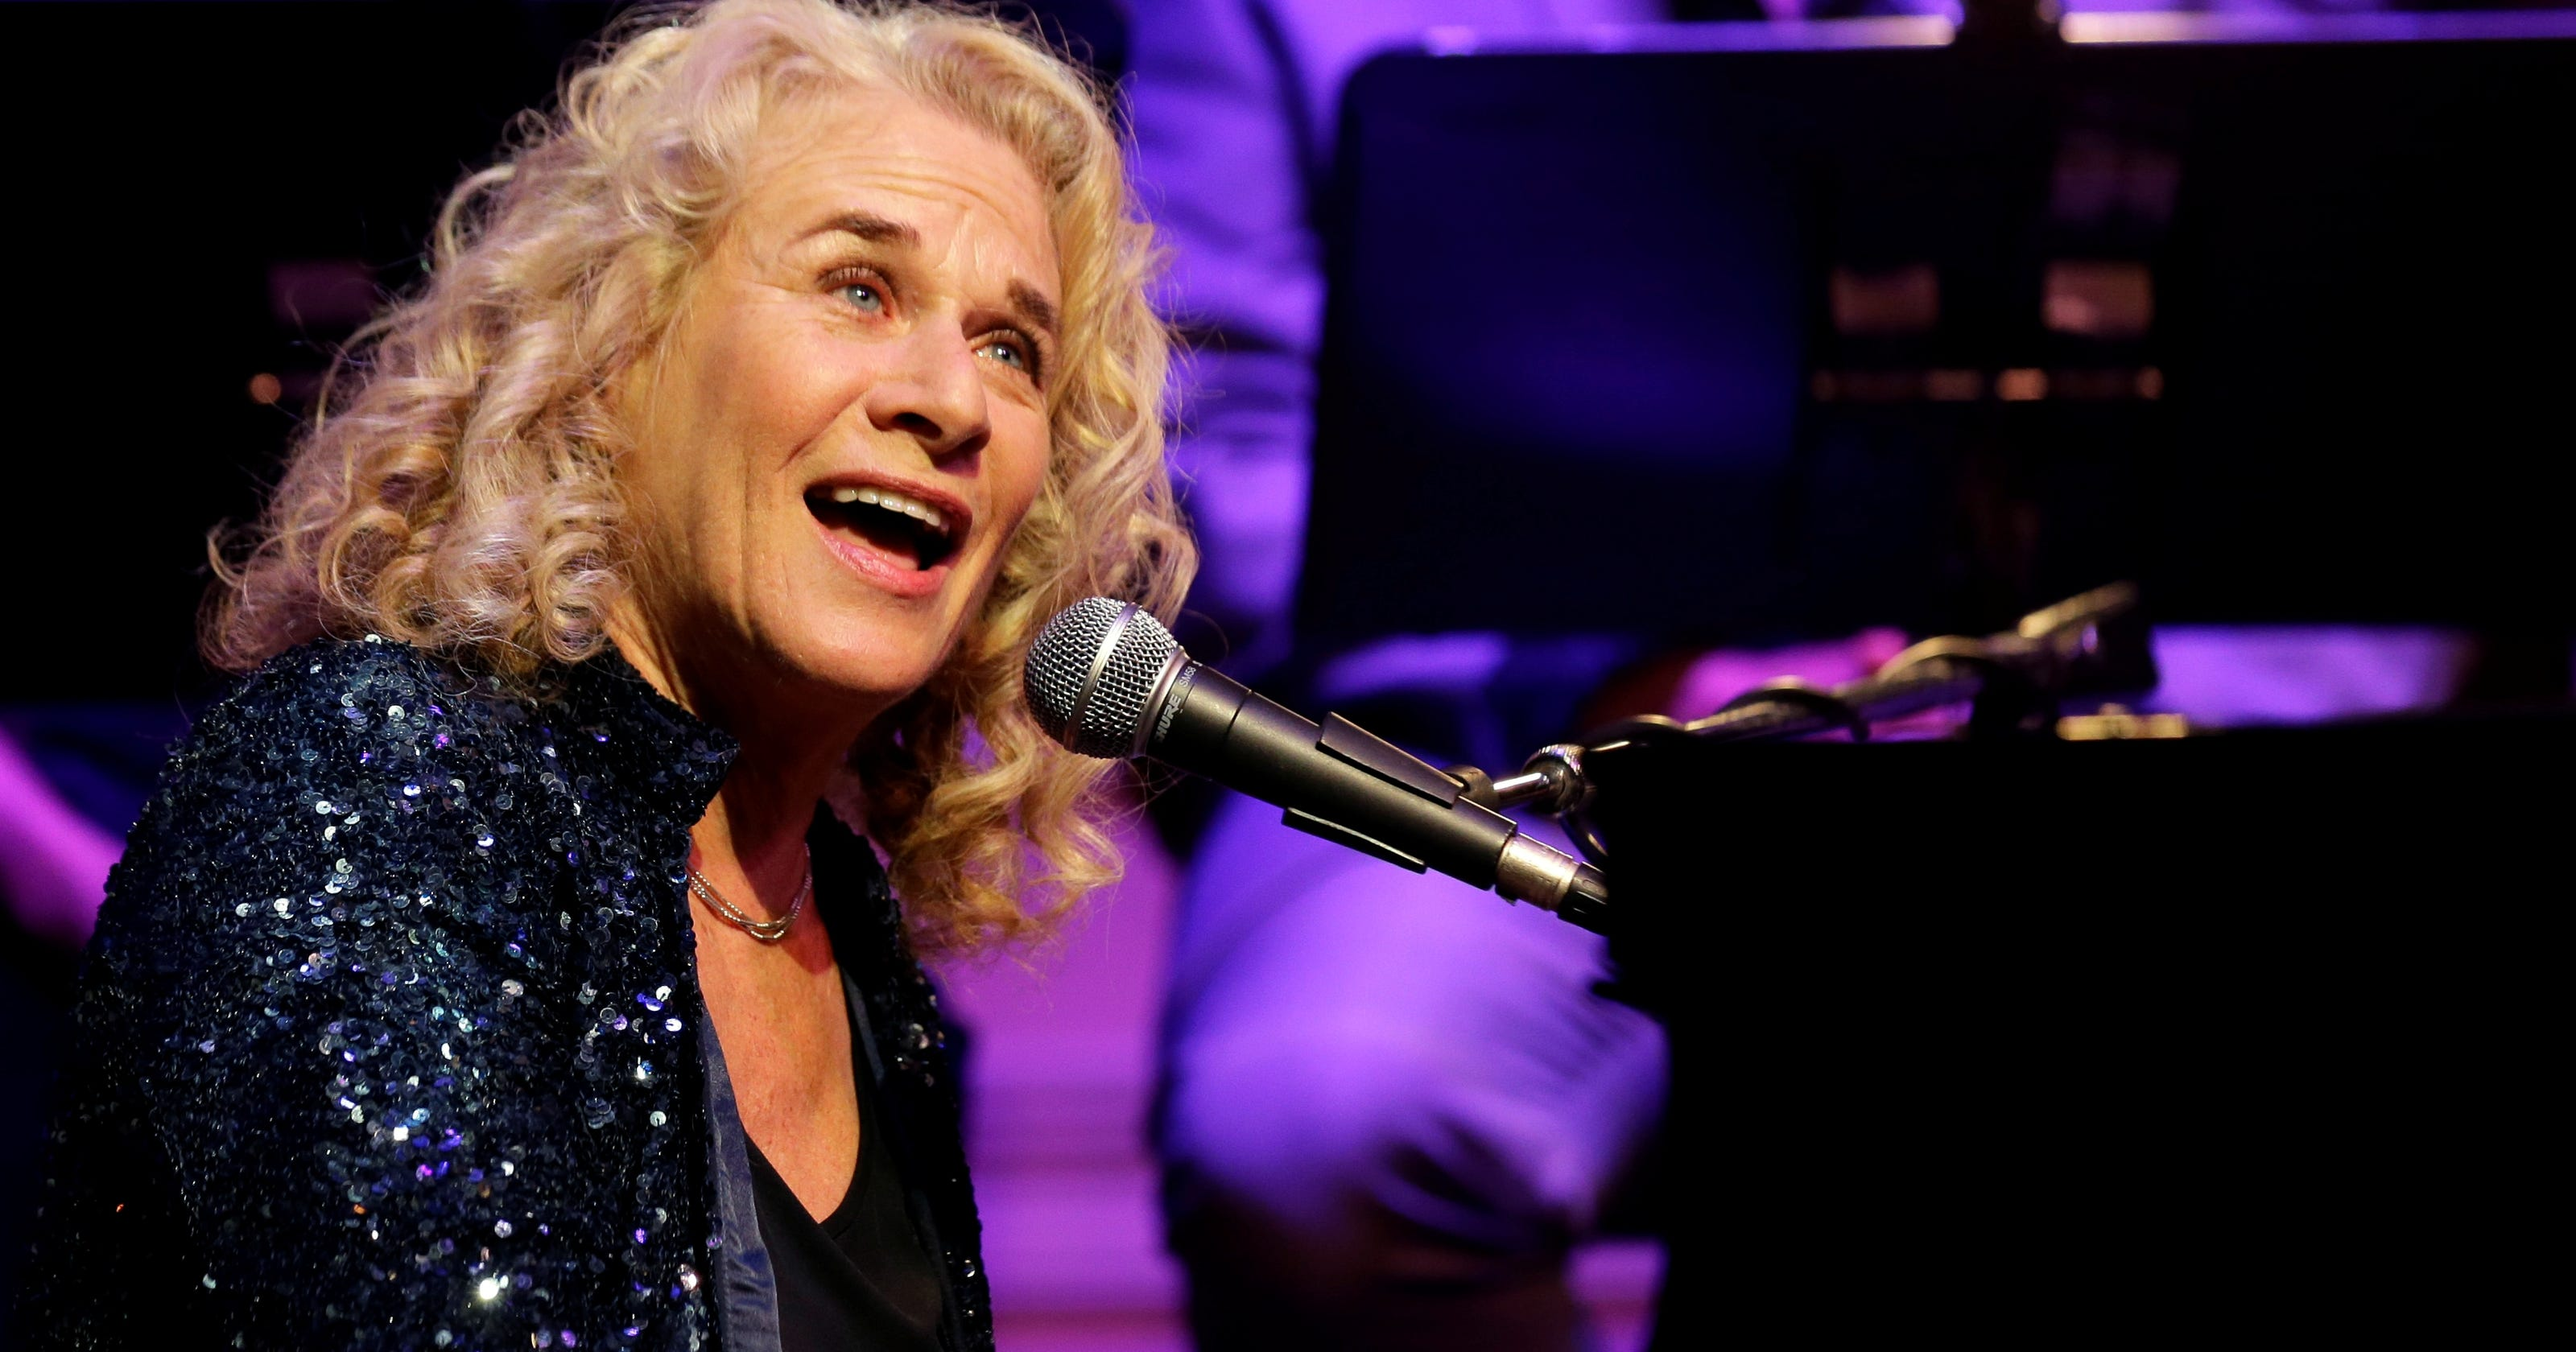 Carole king photo gallery Jim Carole's Mexico Adventure